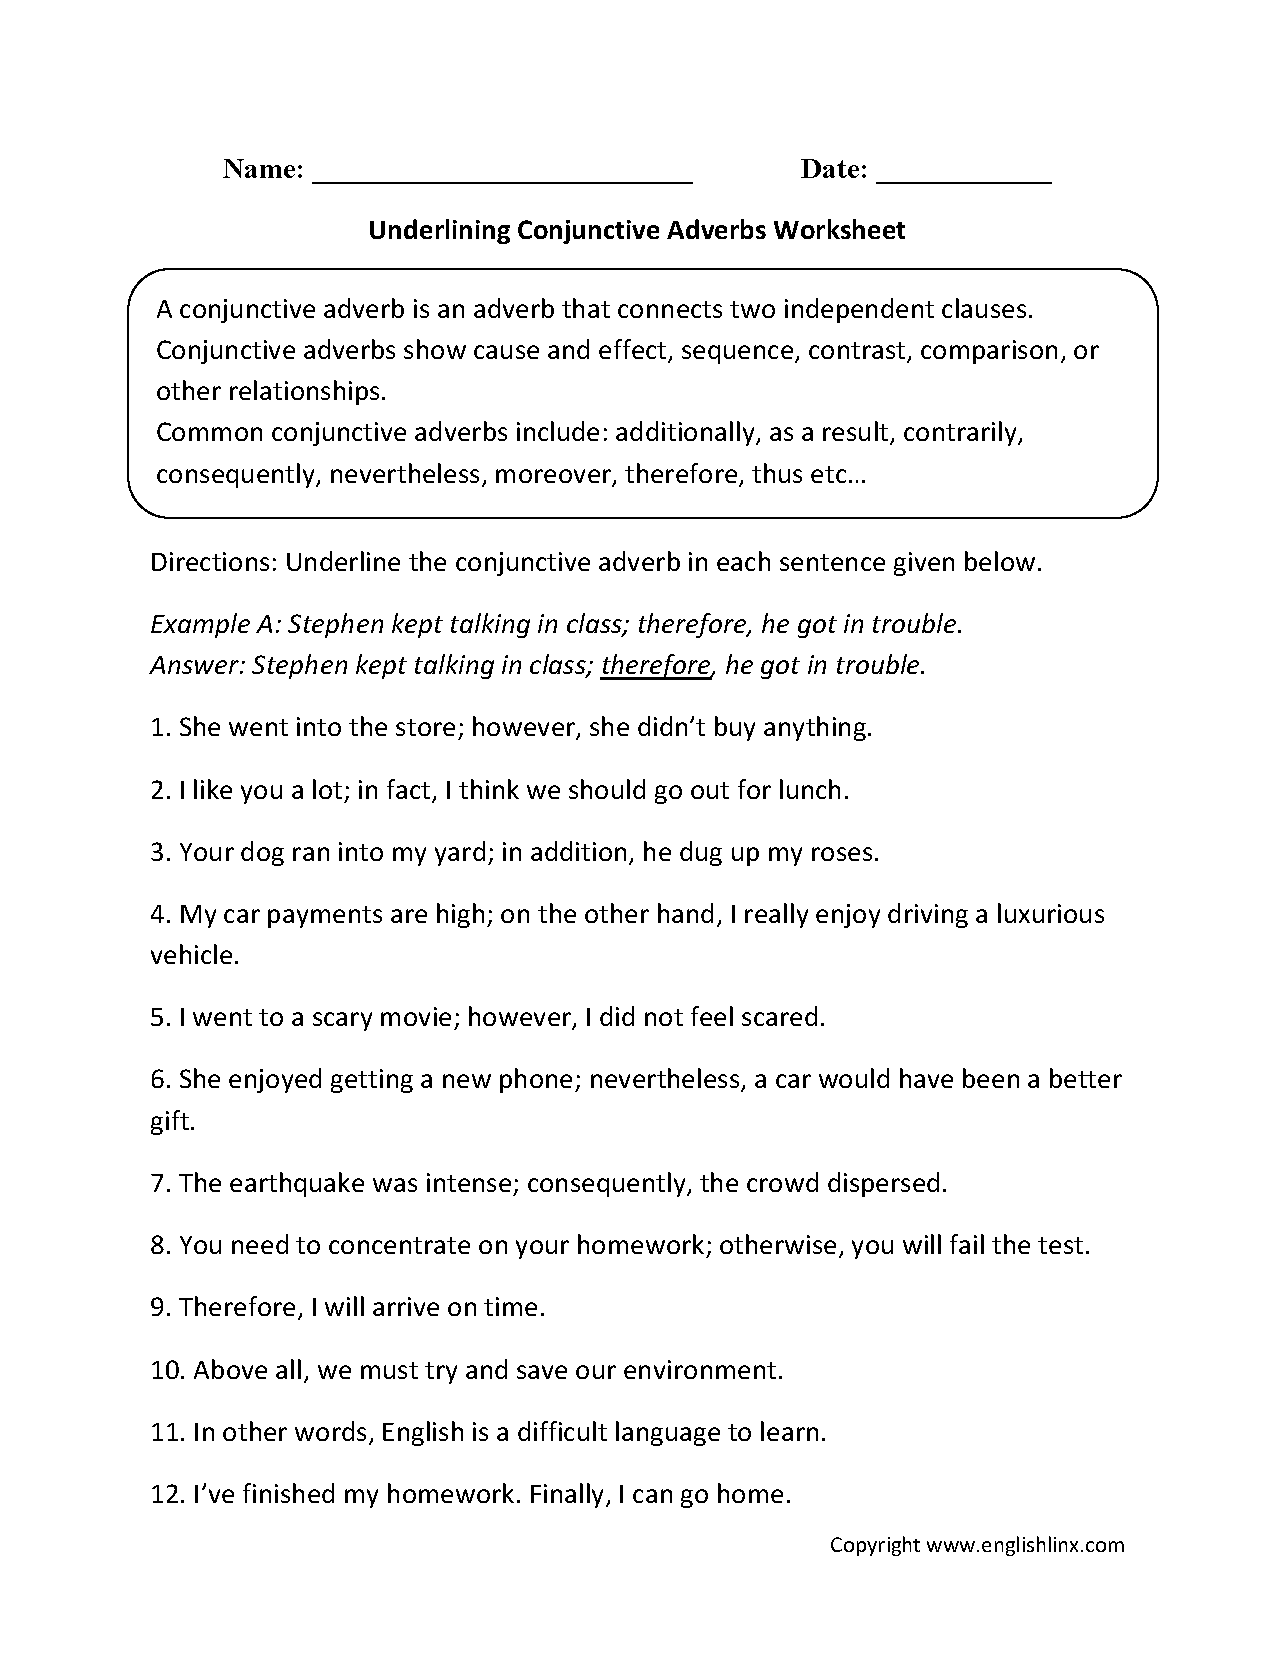 Underlining Conjunctive Adverbs Worksheet